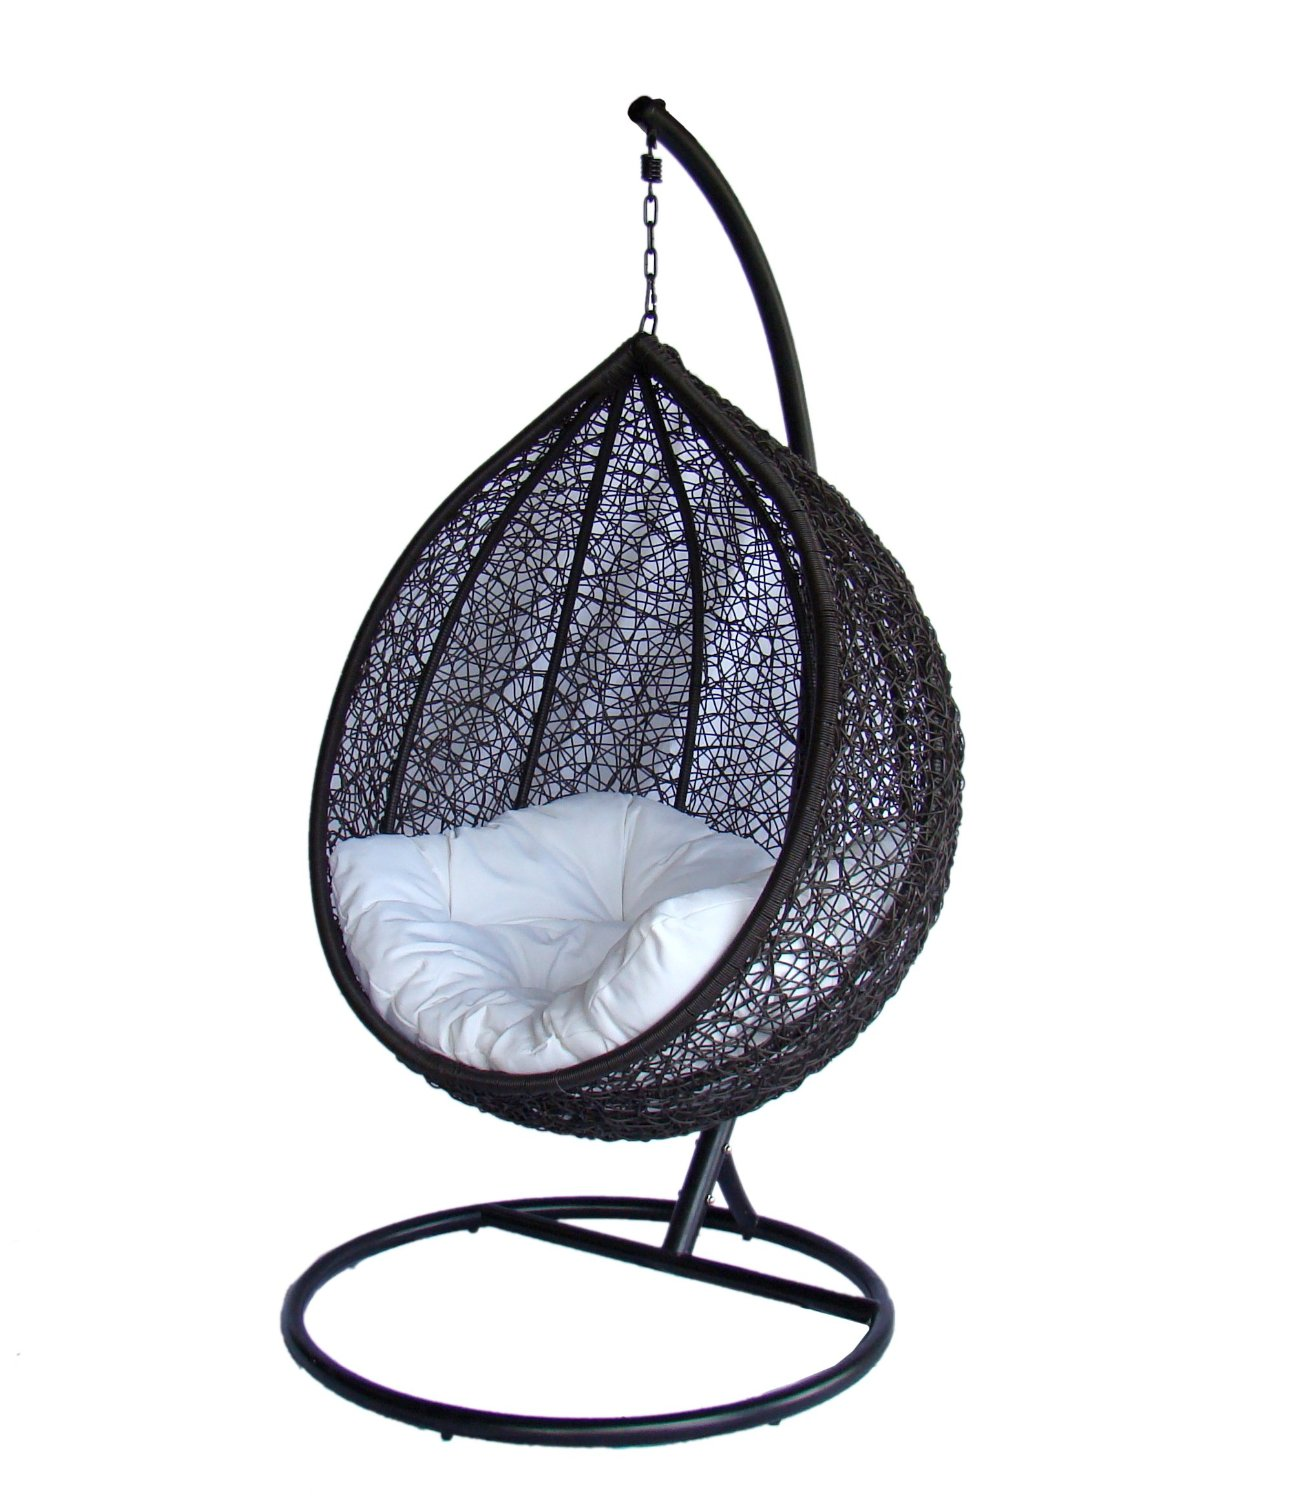 double smsender hammock hayneedle swing master chair hanging co tulum